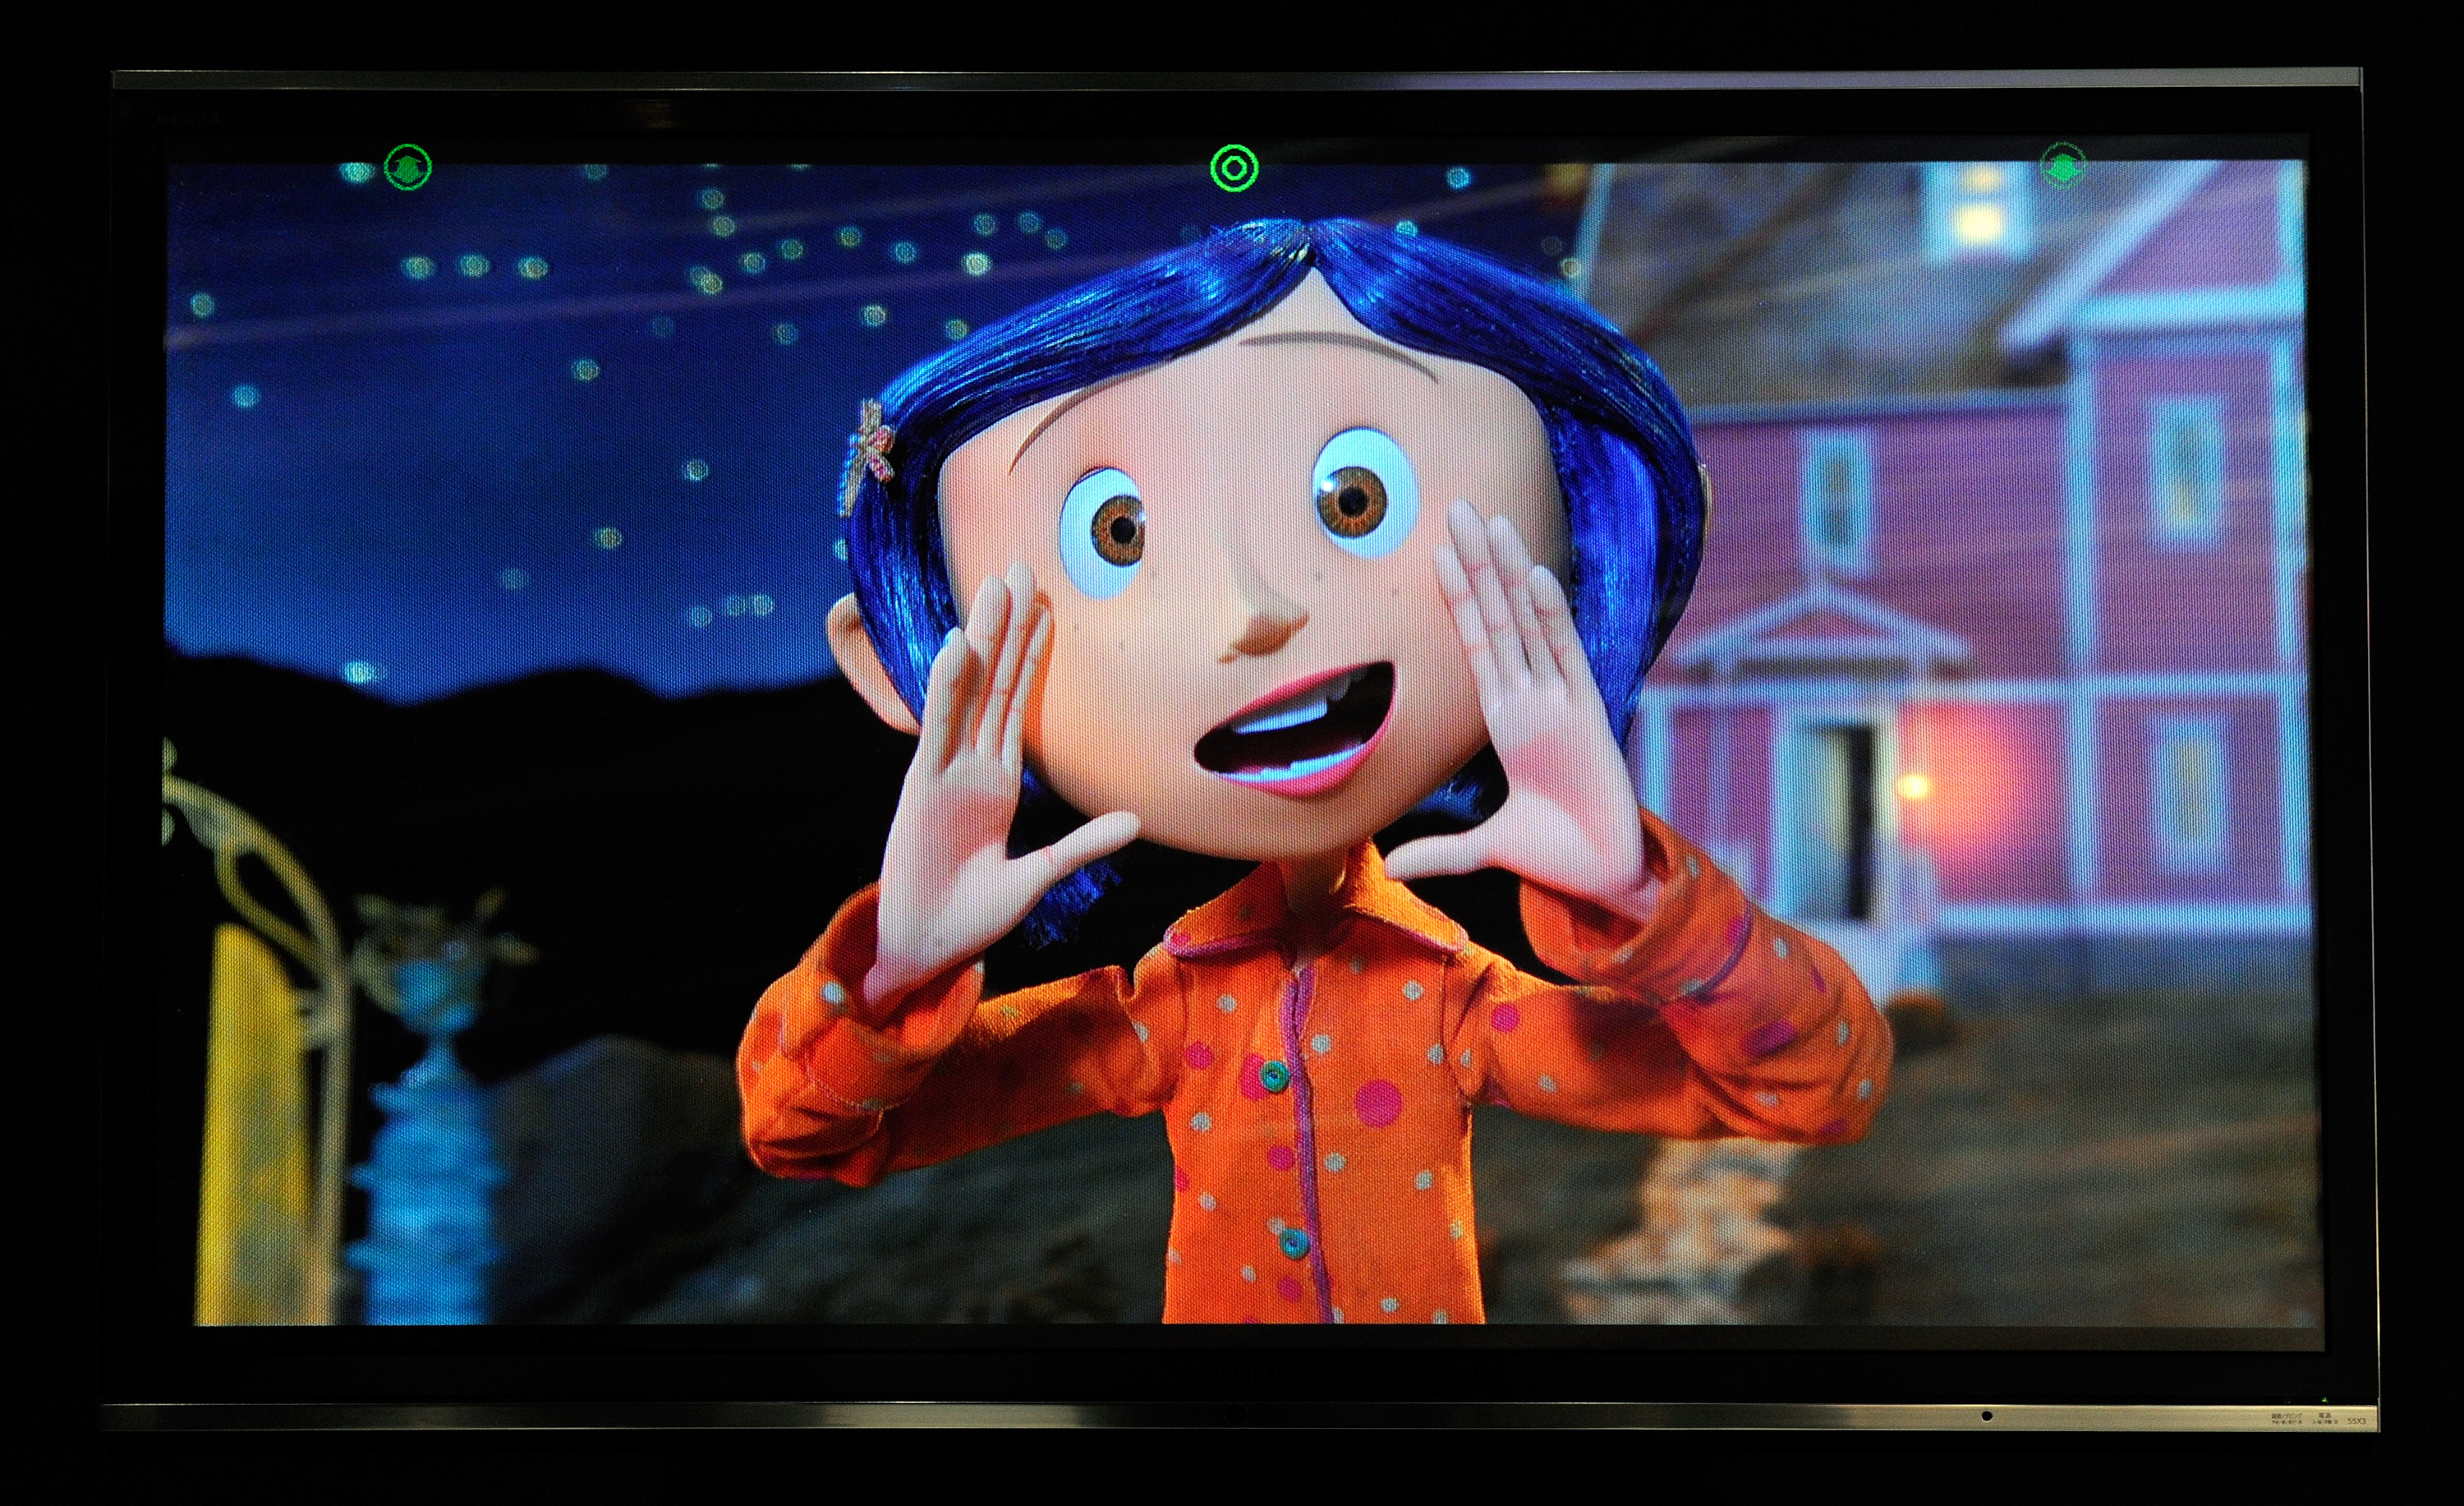 Coraline Is The Movie Getting A Live Action Remake